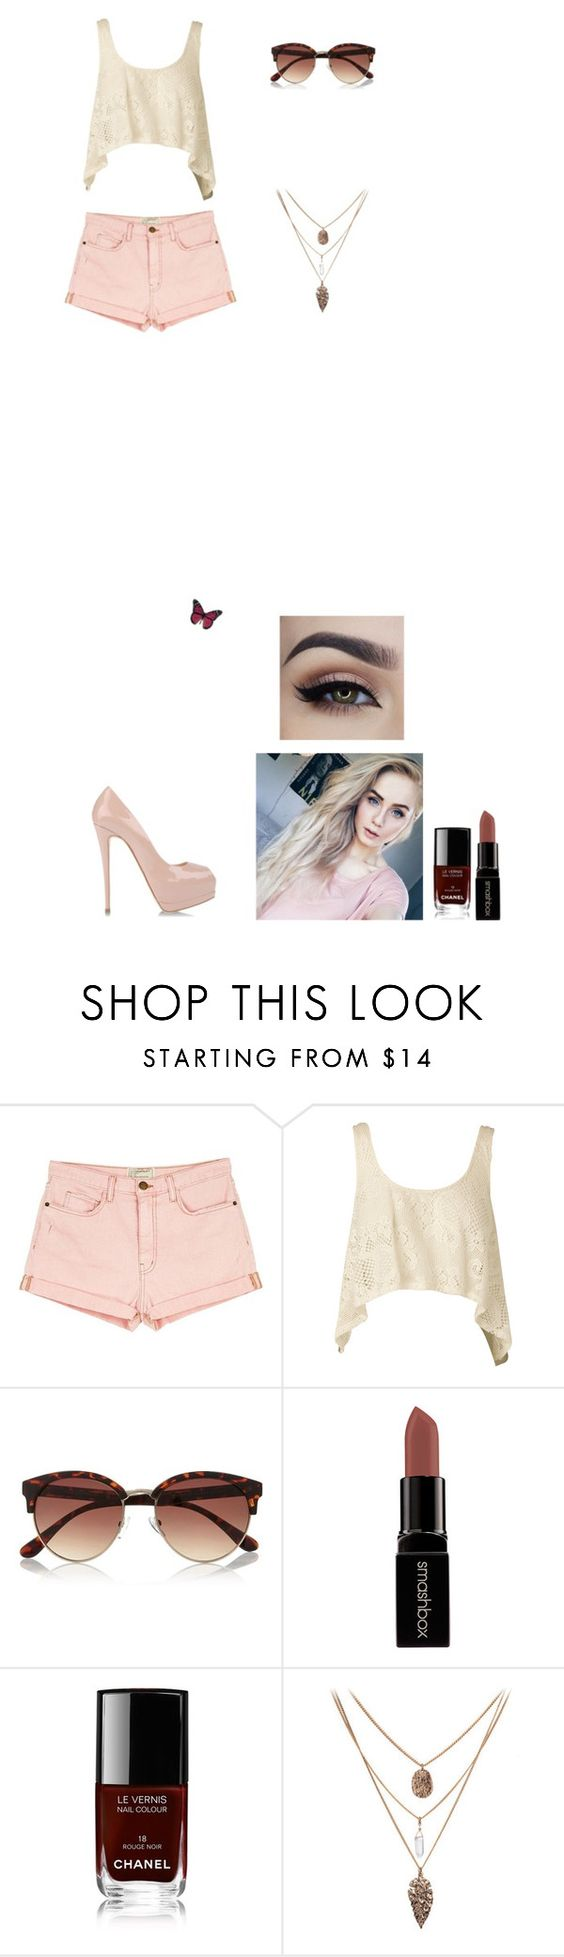 """""""Untitled #586"""" by irinyk ❤ liked on Polyvore featuring Current/Elliott, Nookie, River Island, Smashbox, Chanel and Giuseppe Zanotti"""